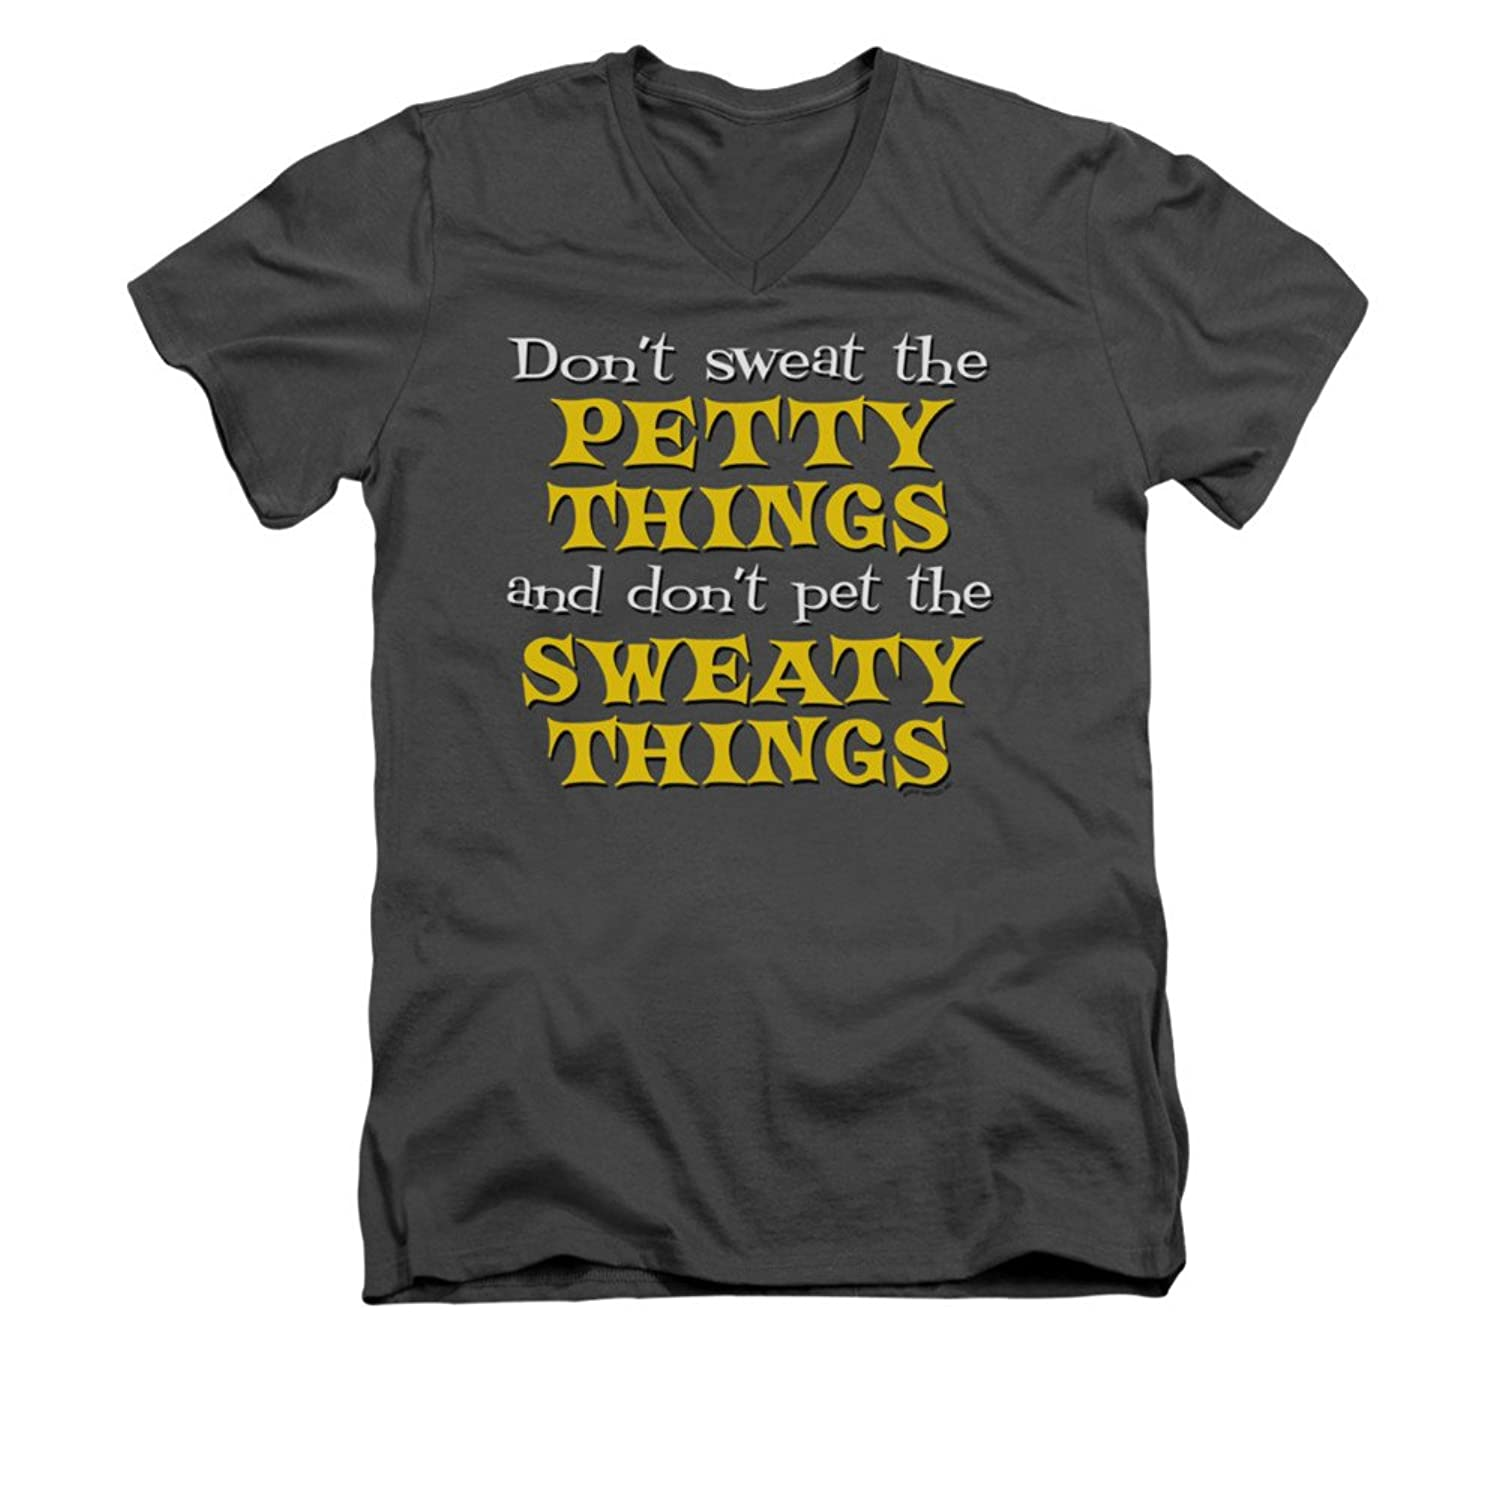 Don't Sweat The Petty Things And Don't Pet The Sweaty Things Adult VNeck T-Shirt